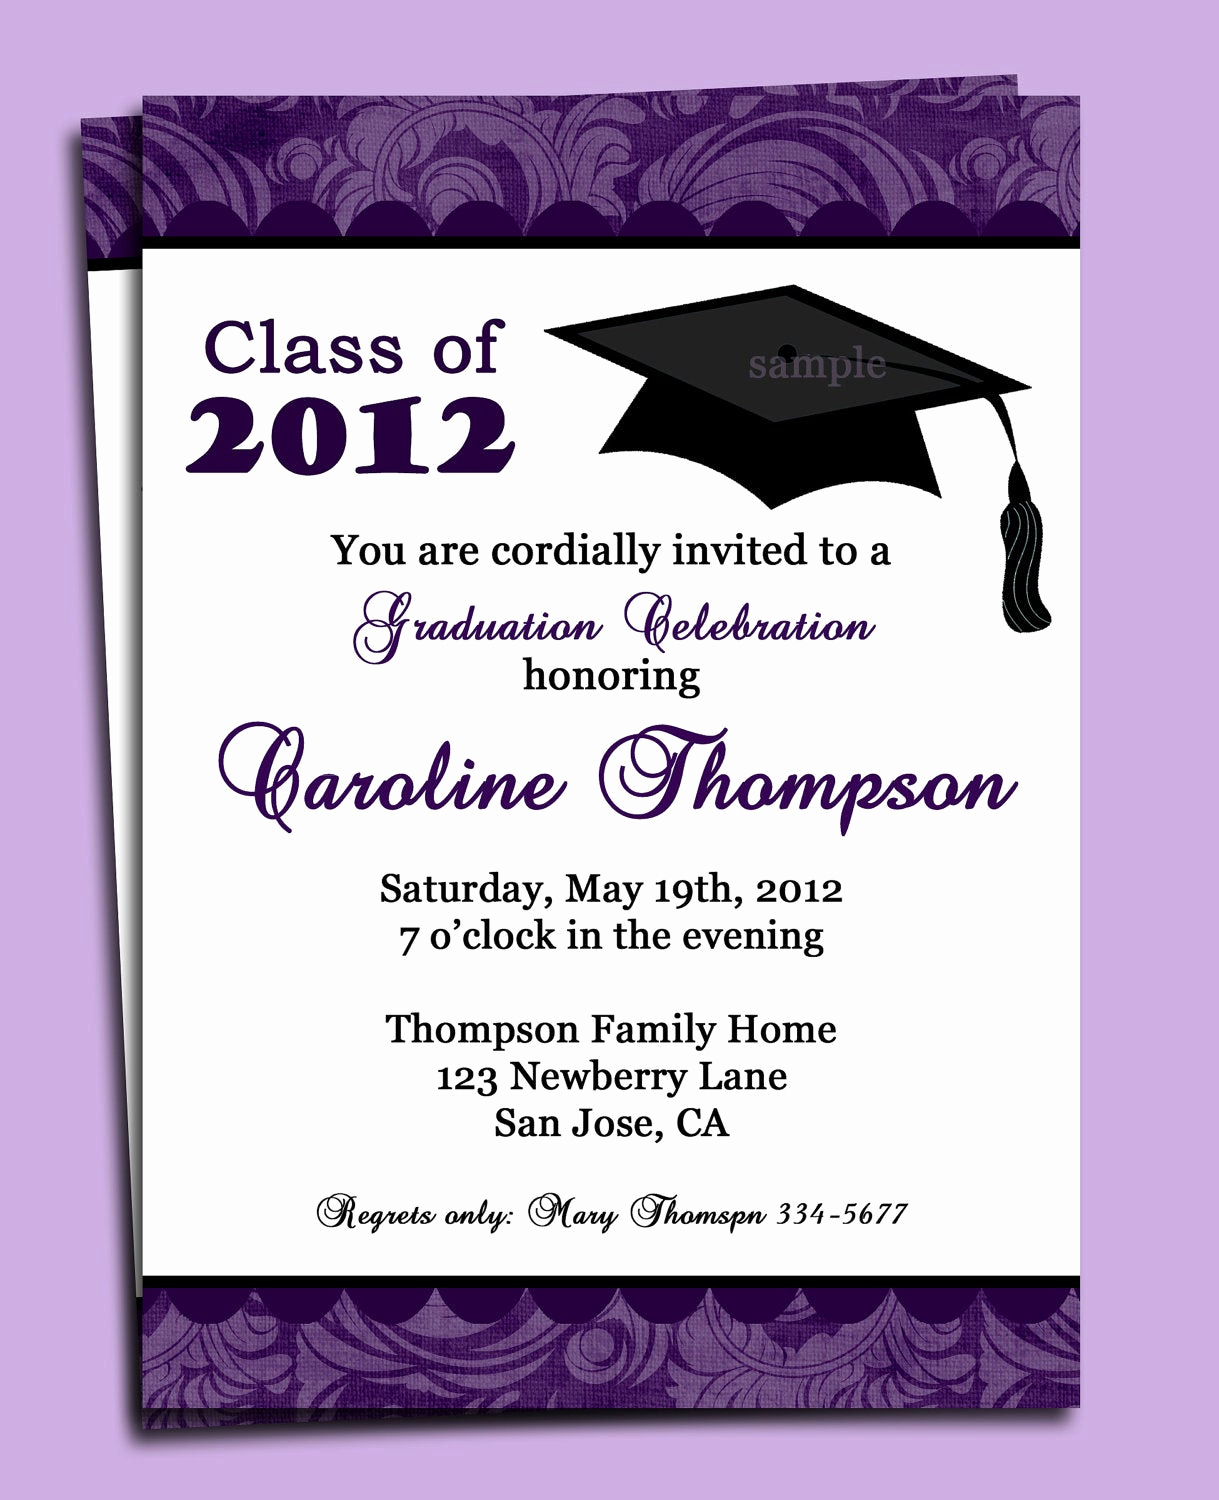 Graduation Party Invitation Ideas Inspirational Graduation Party or Announcement Invitation Printable or